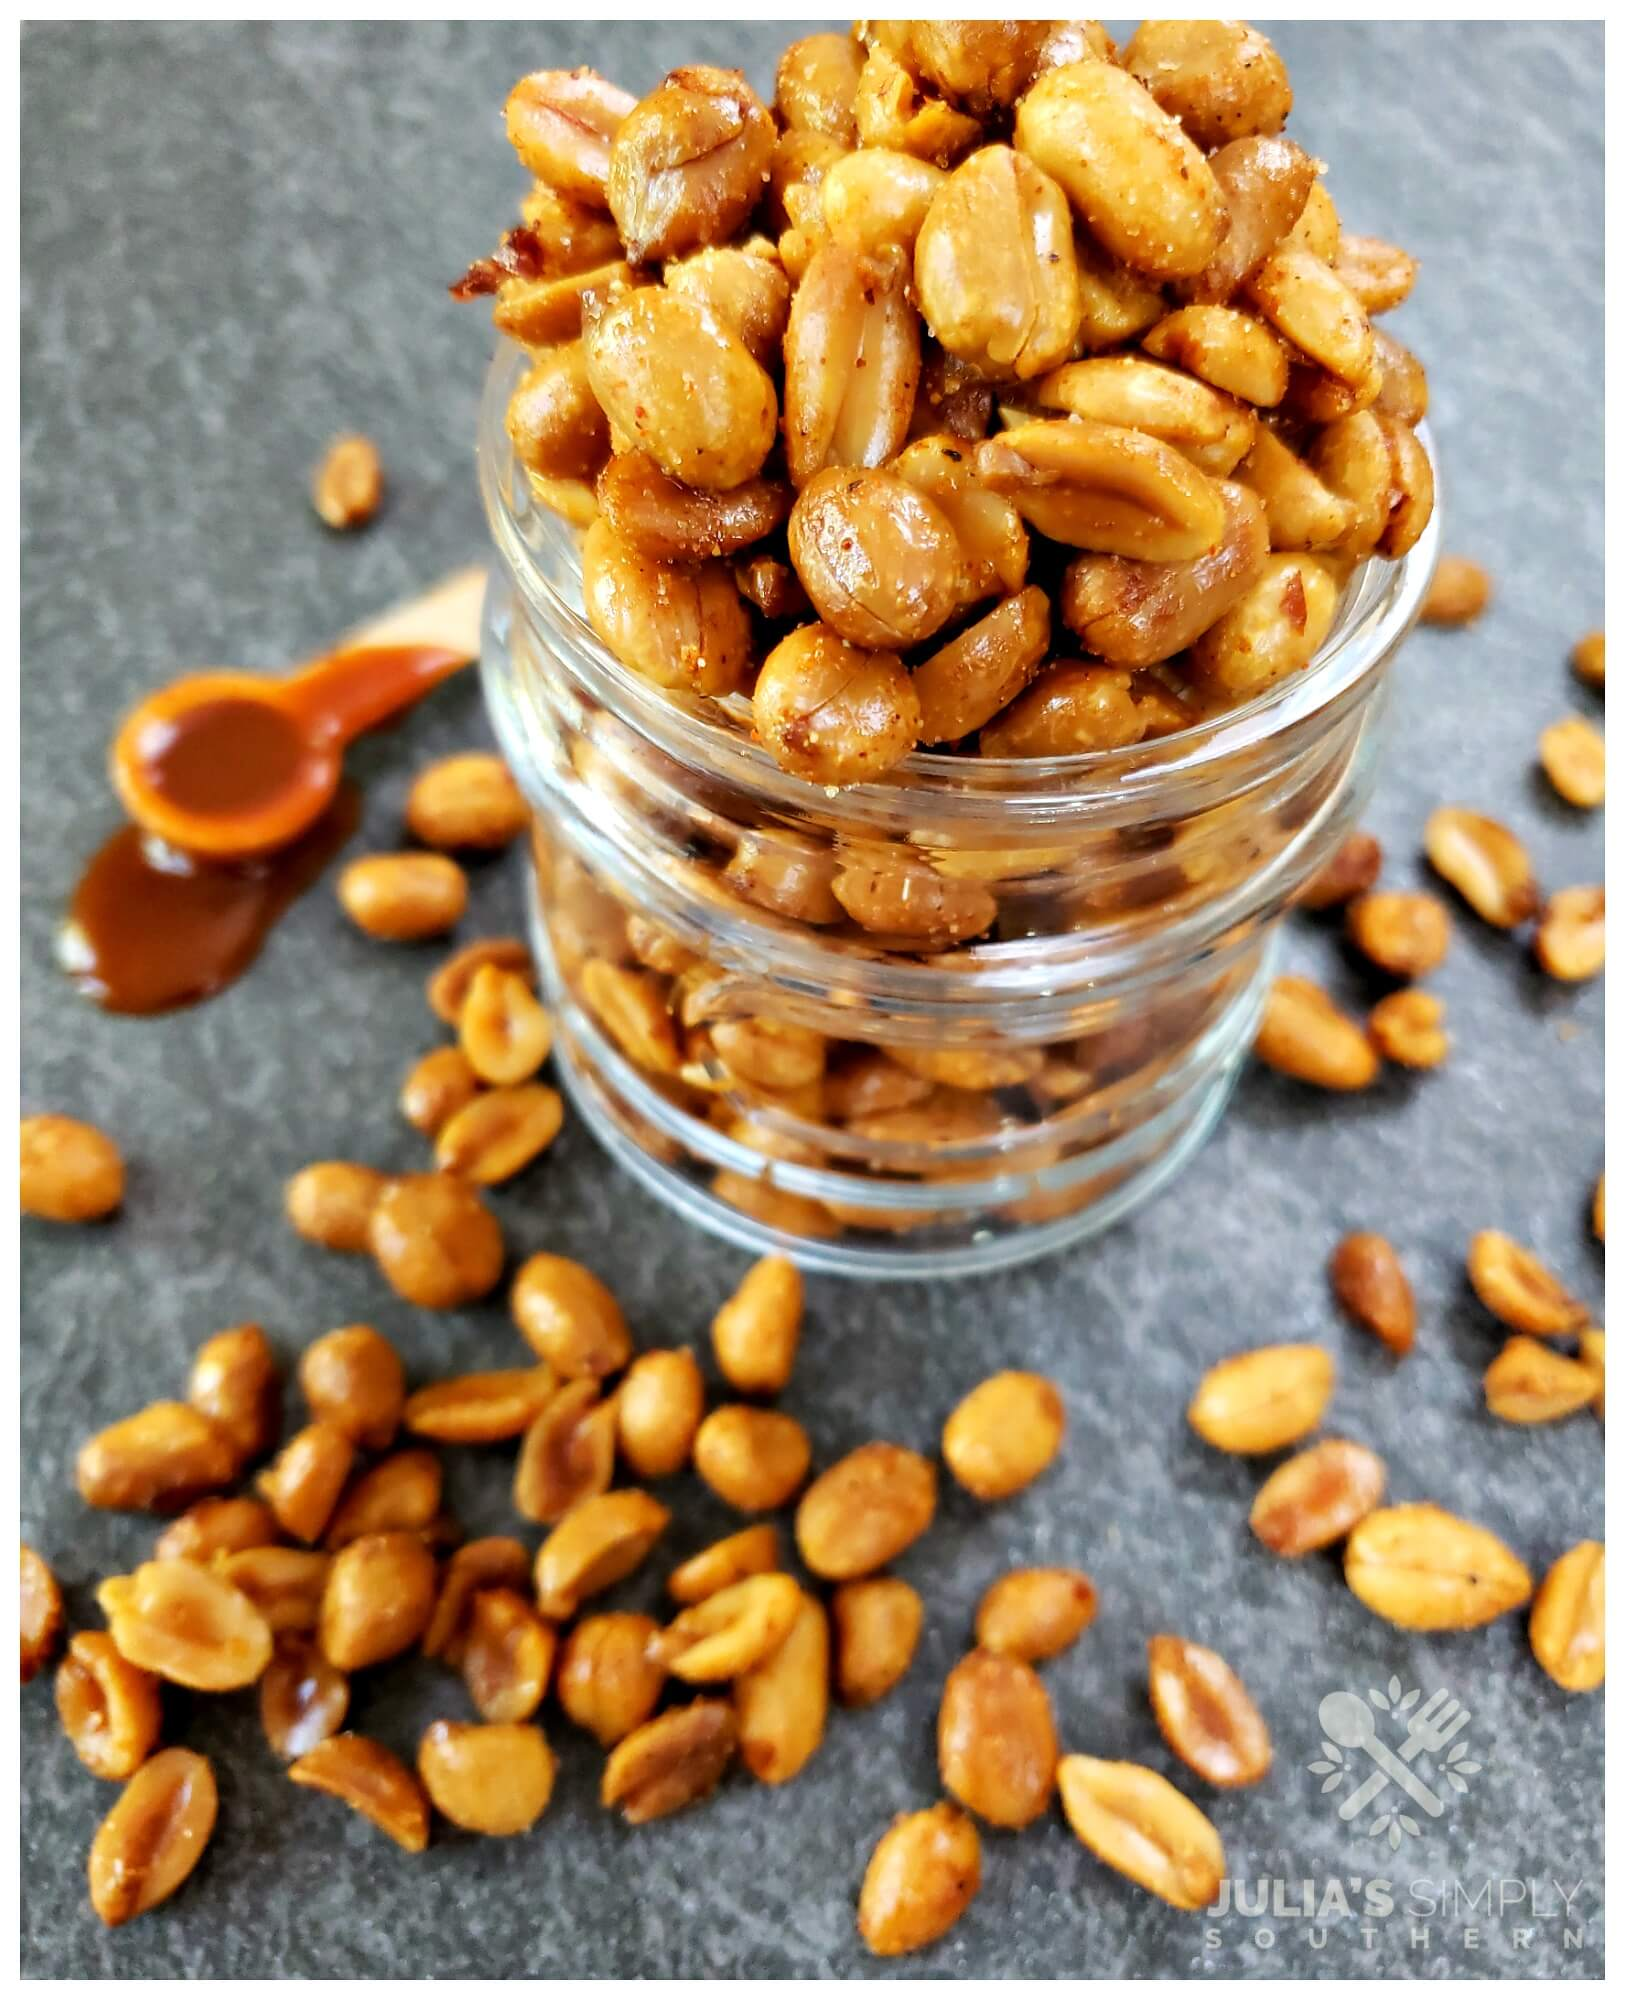 An easy appetizer party food with nuts. Serve delicious bbq peanuts that are a mix of smokey, sweet and spicy that guests will love.